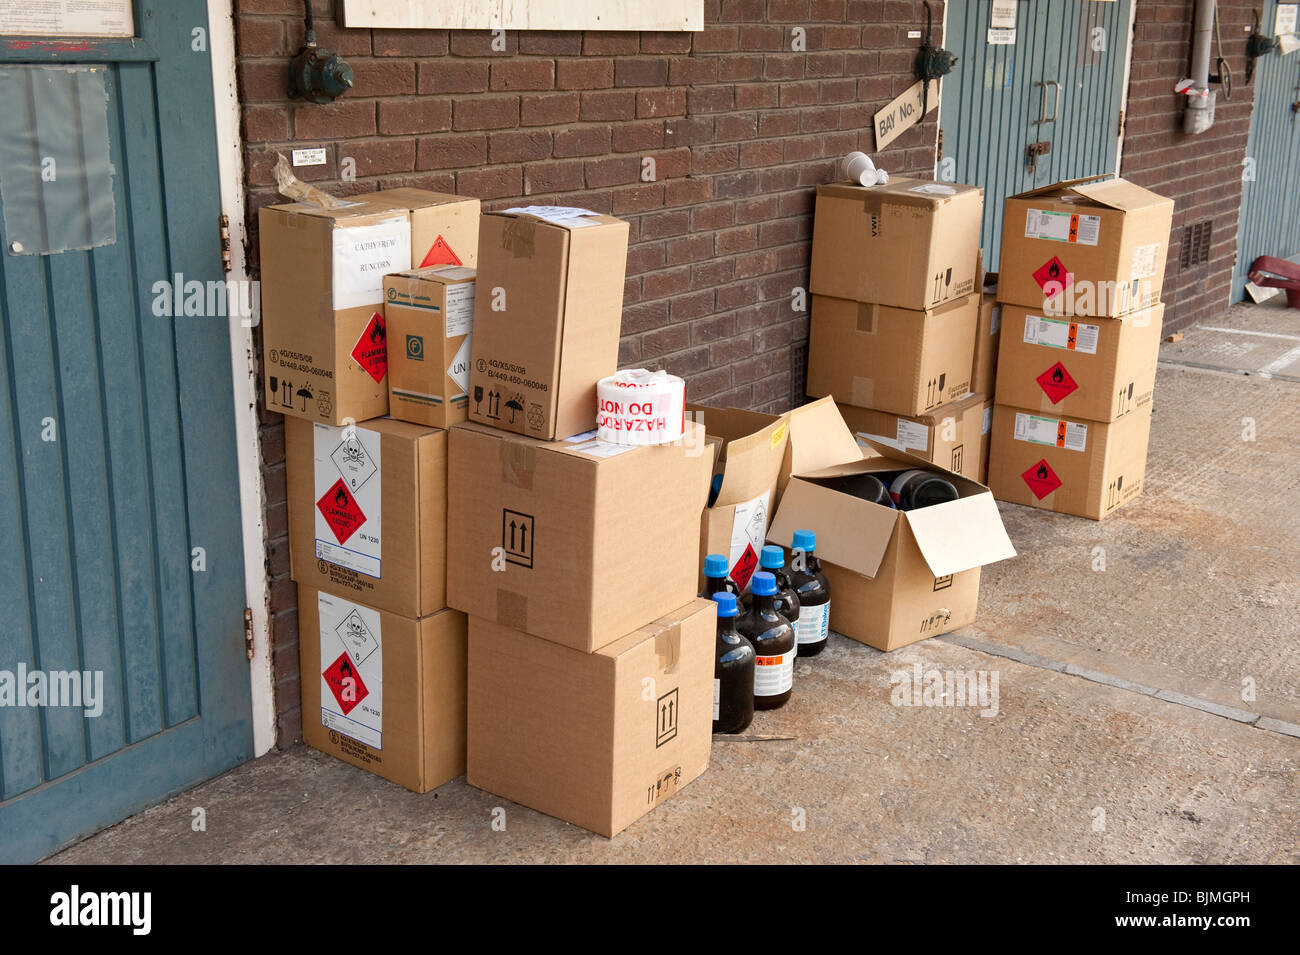 Boxes of flammable toxic chemicals stacked against wall